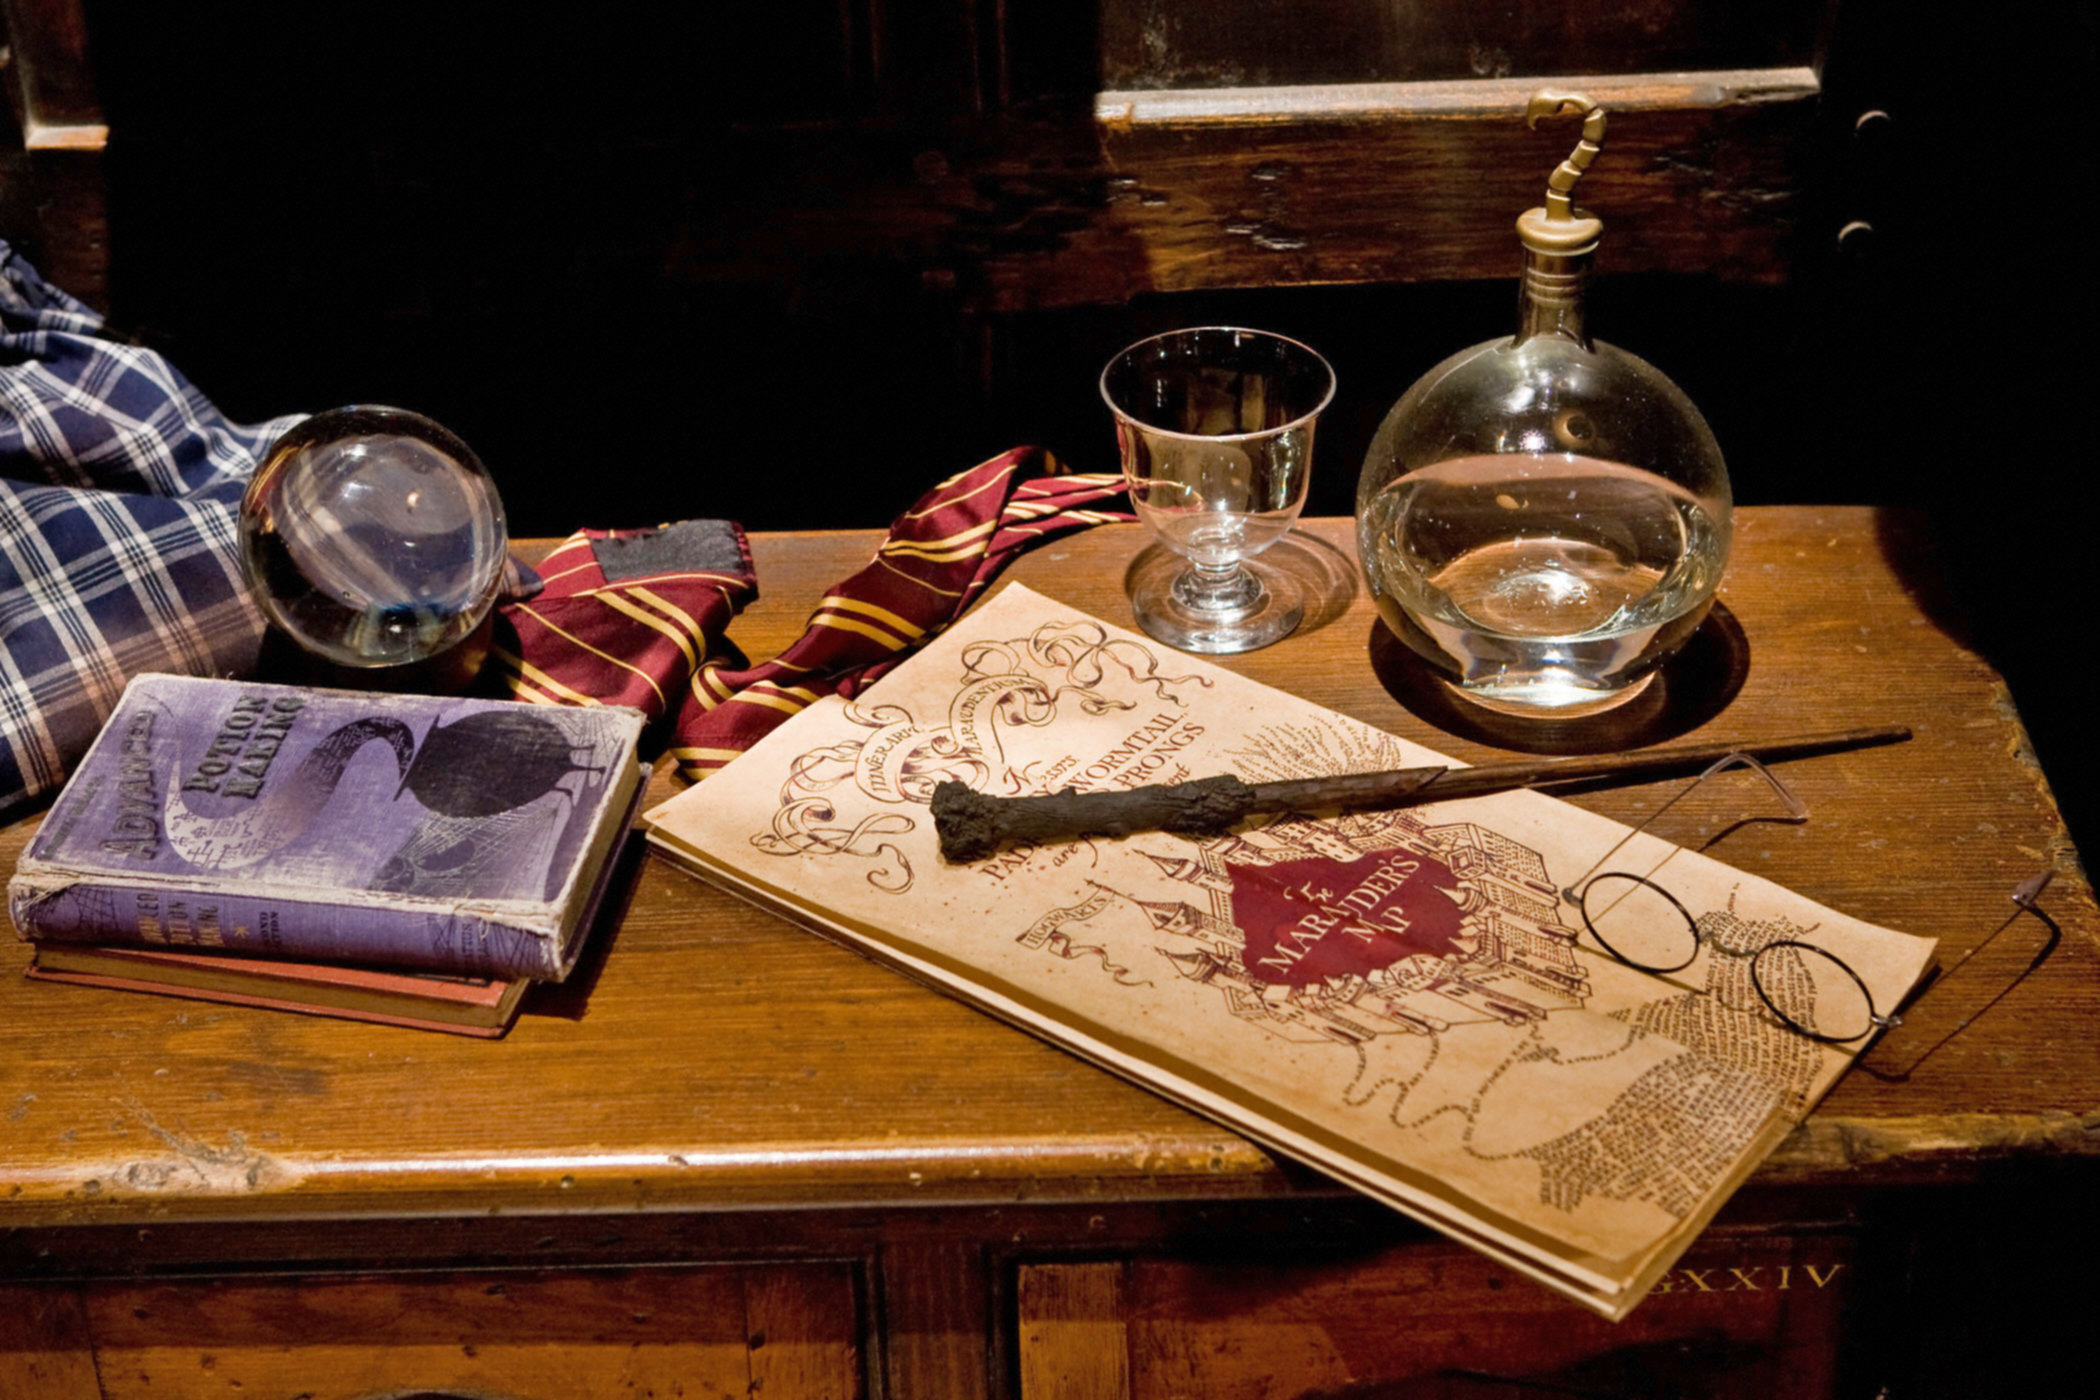 Harry's wand and glasses resting on the Marauders map on a desk